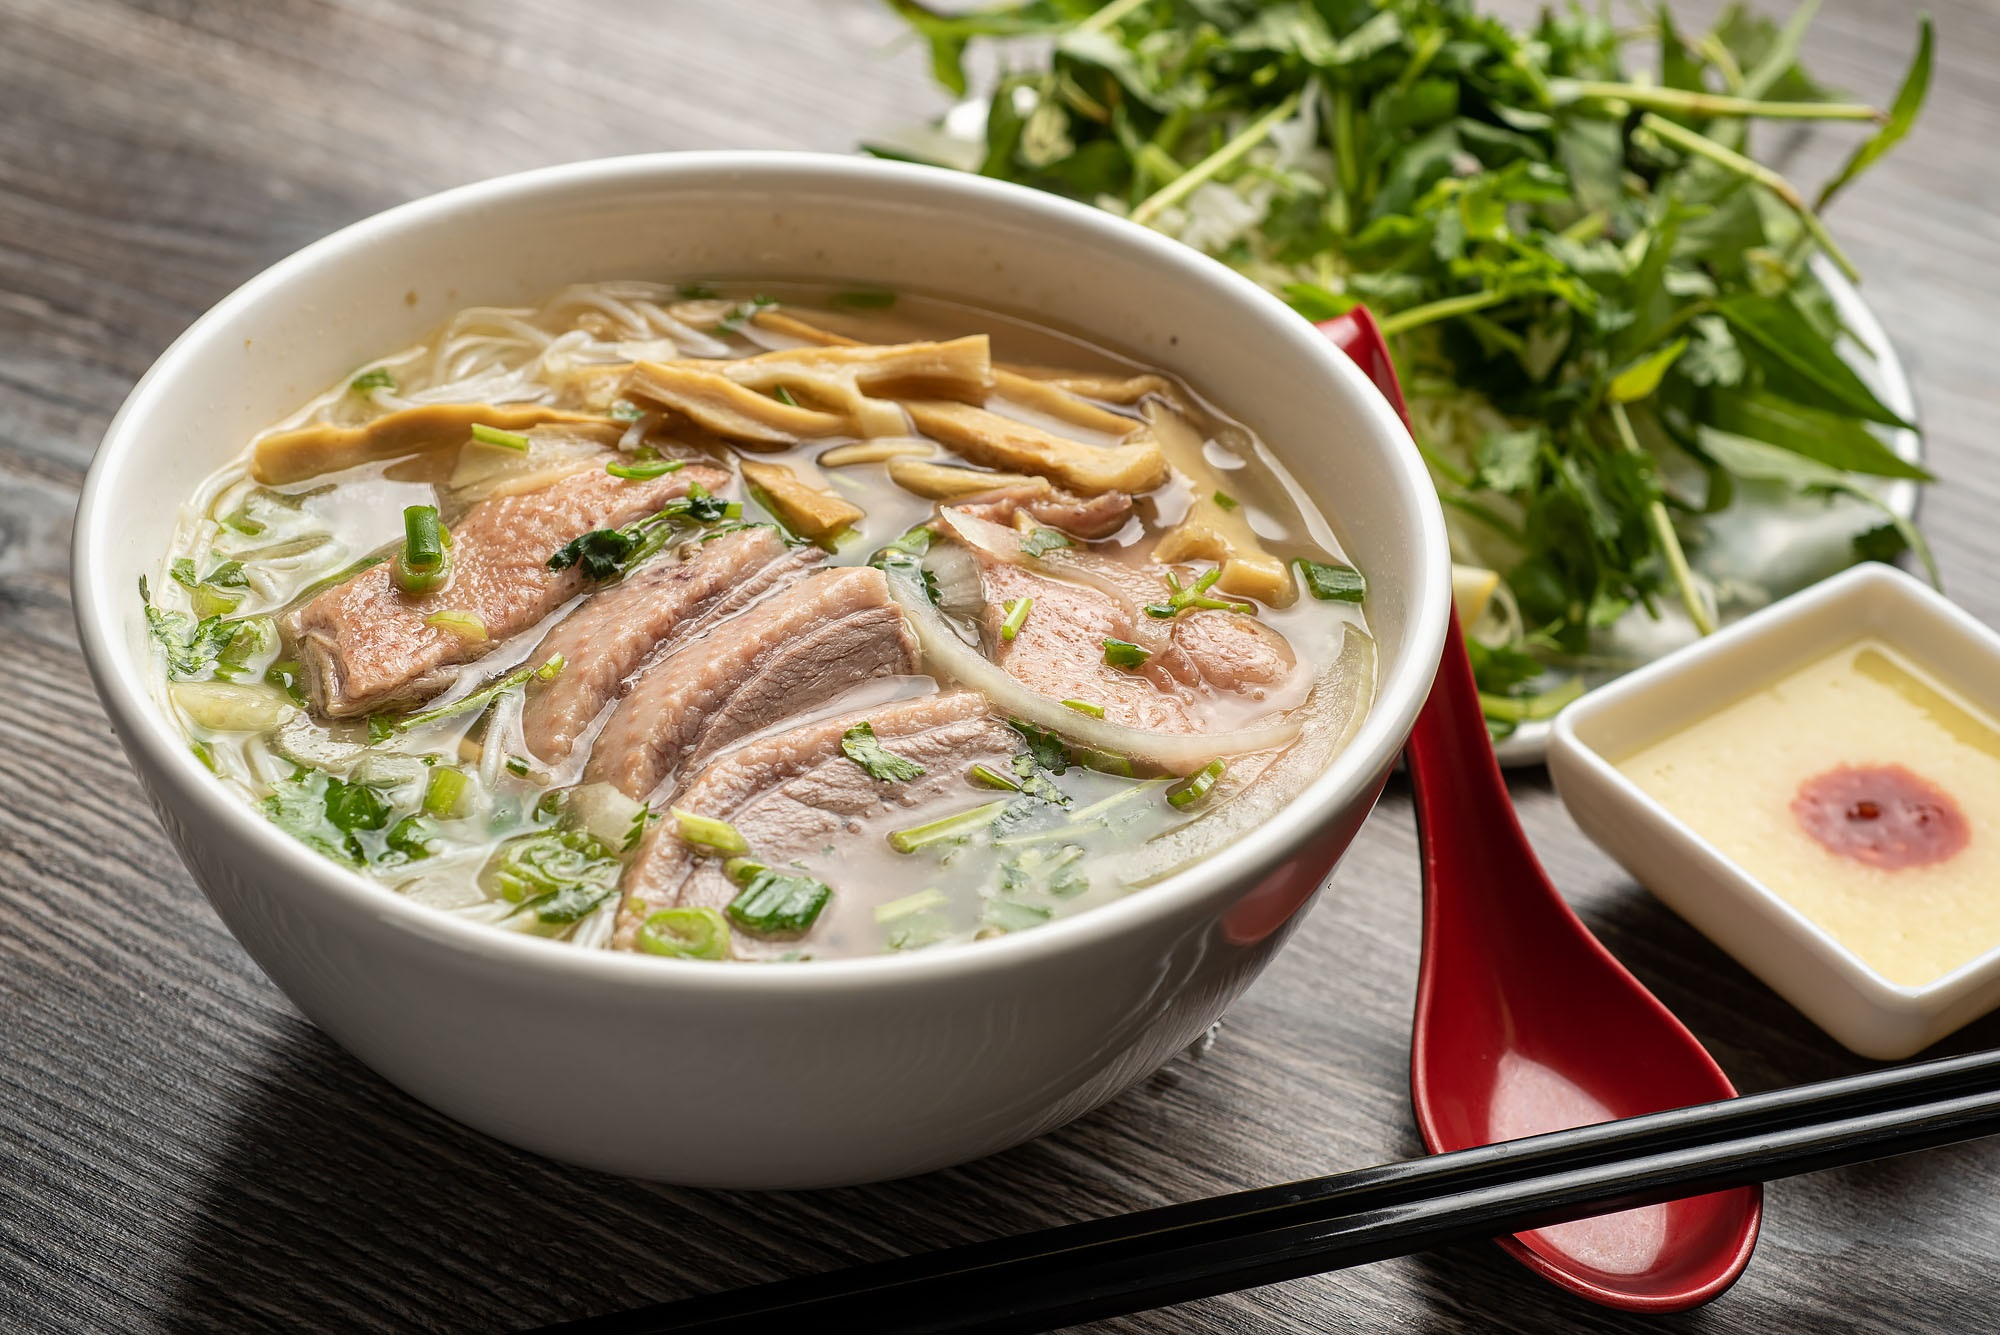 Bun mang vit, duck and bamboo noodle soup with herbs and sauce at Pho Ga